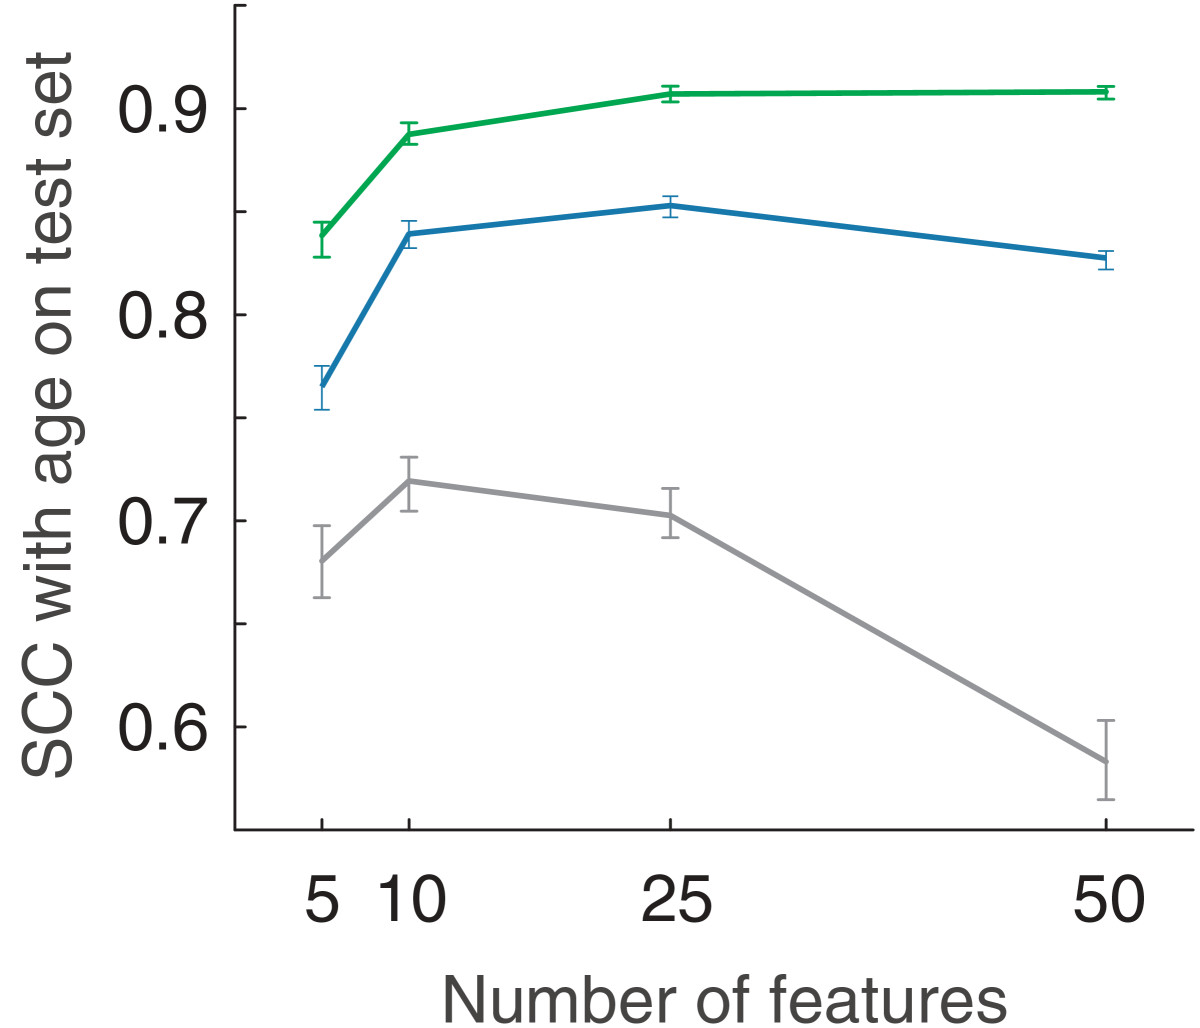 https://static-content.springer.com/image/art%3A10.1186%2Fgb-2010-11-2-r13/MediaObjects/13059_2009_Article_2306_Fig5_HTML.jpg